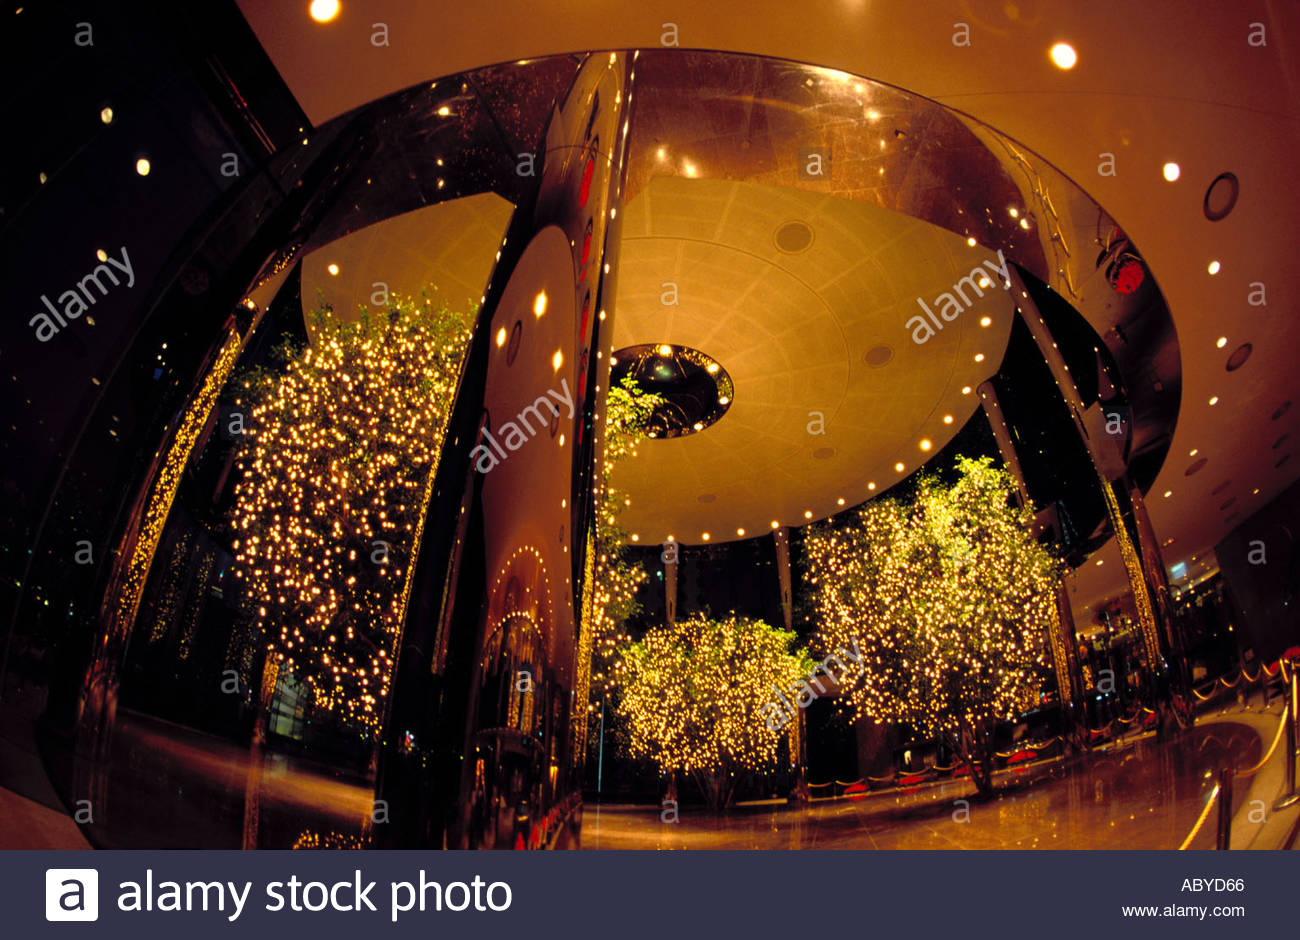 How to start a christmas decor business - Stock Photo Christmas Decoration Lobby Office Building Lights Reflexion Business Economy Luxury Prosperity Success Hong Kong China Asia